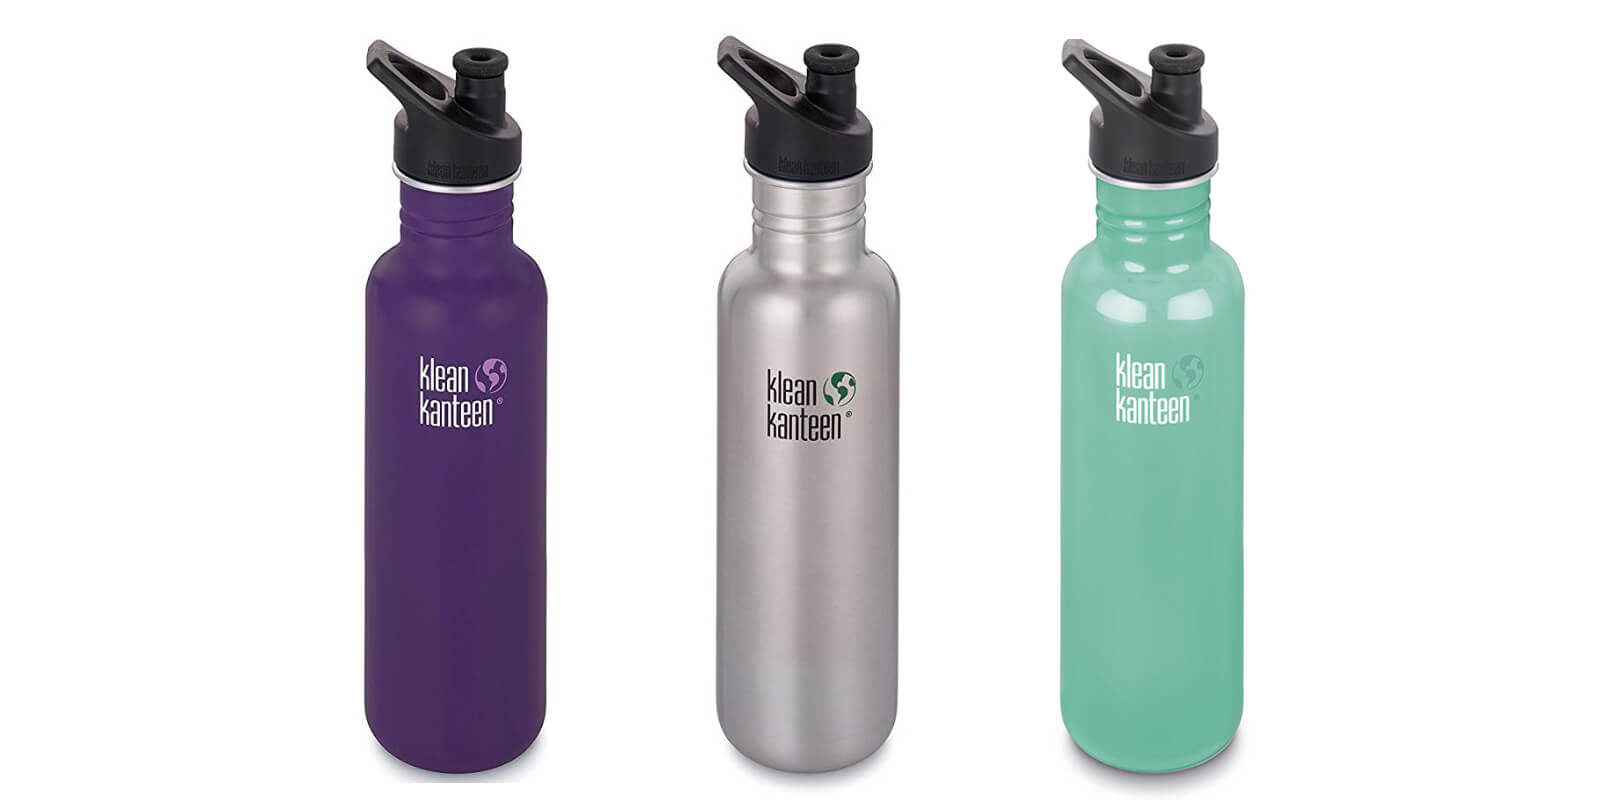 klean-kanteen-eco-friendly-water-bottle